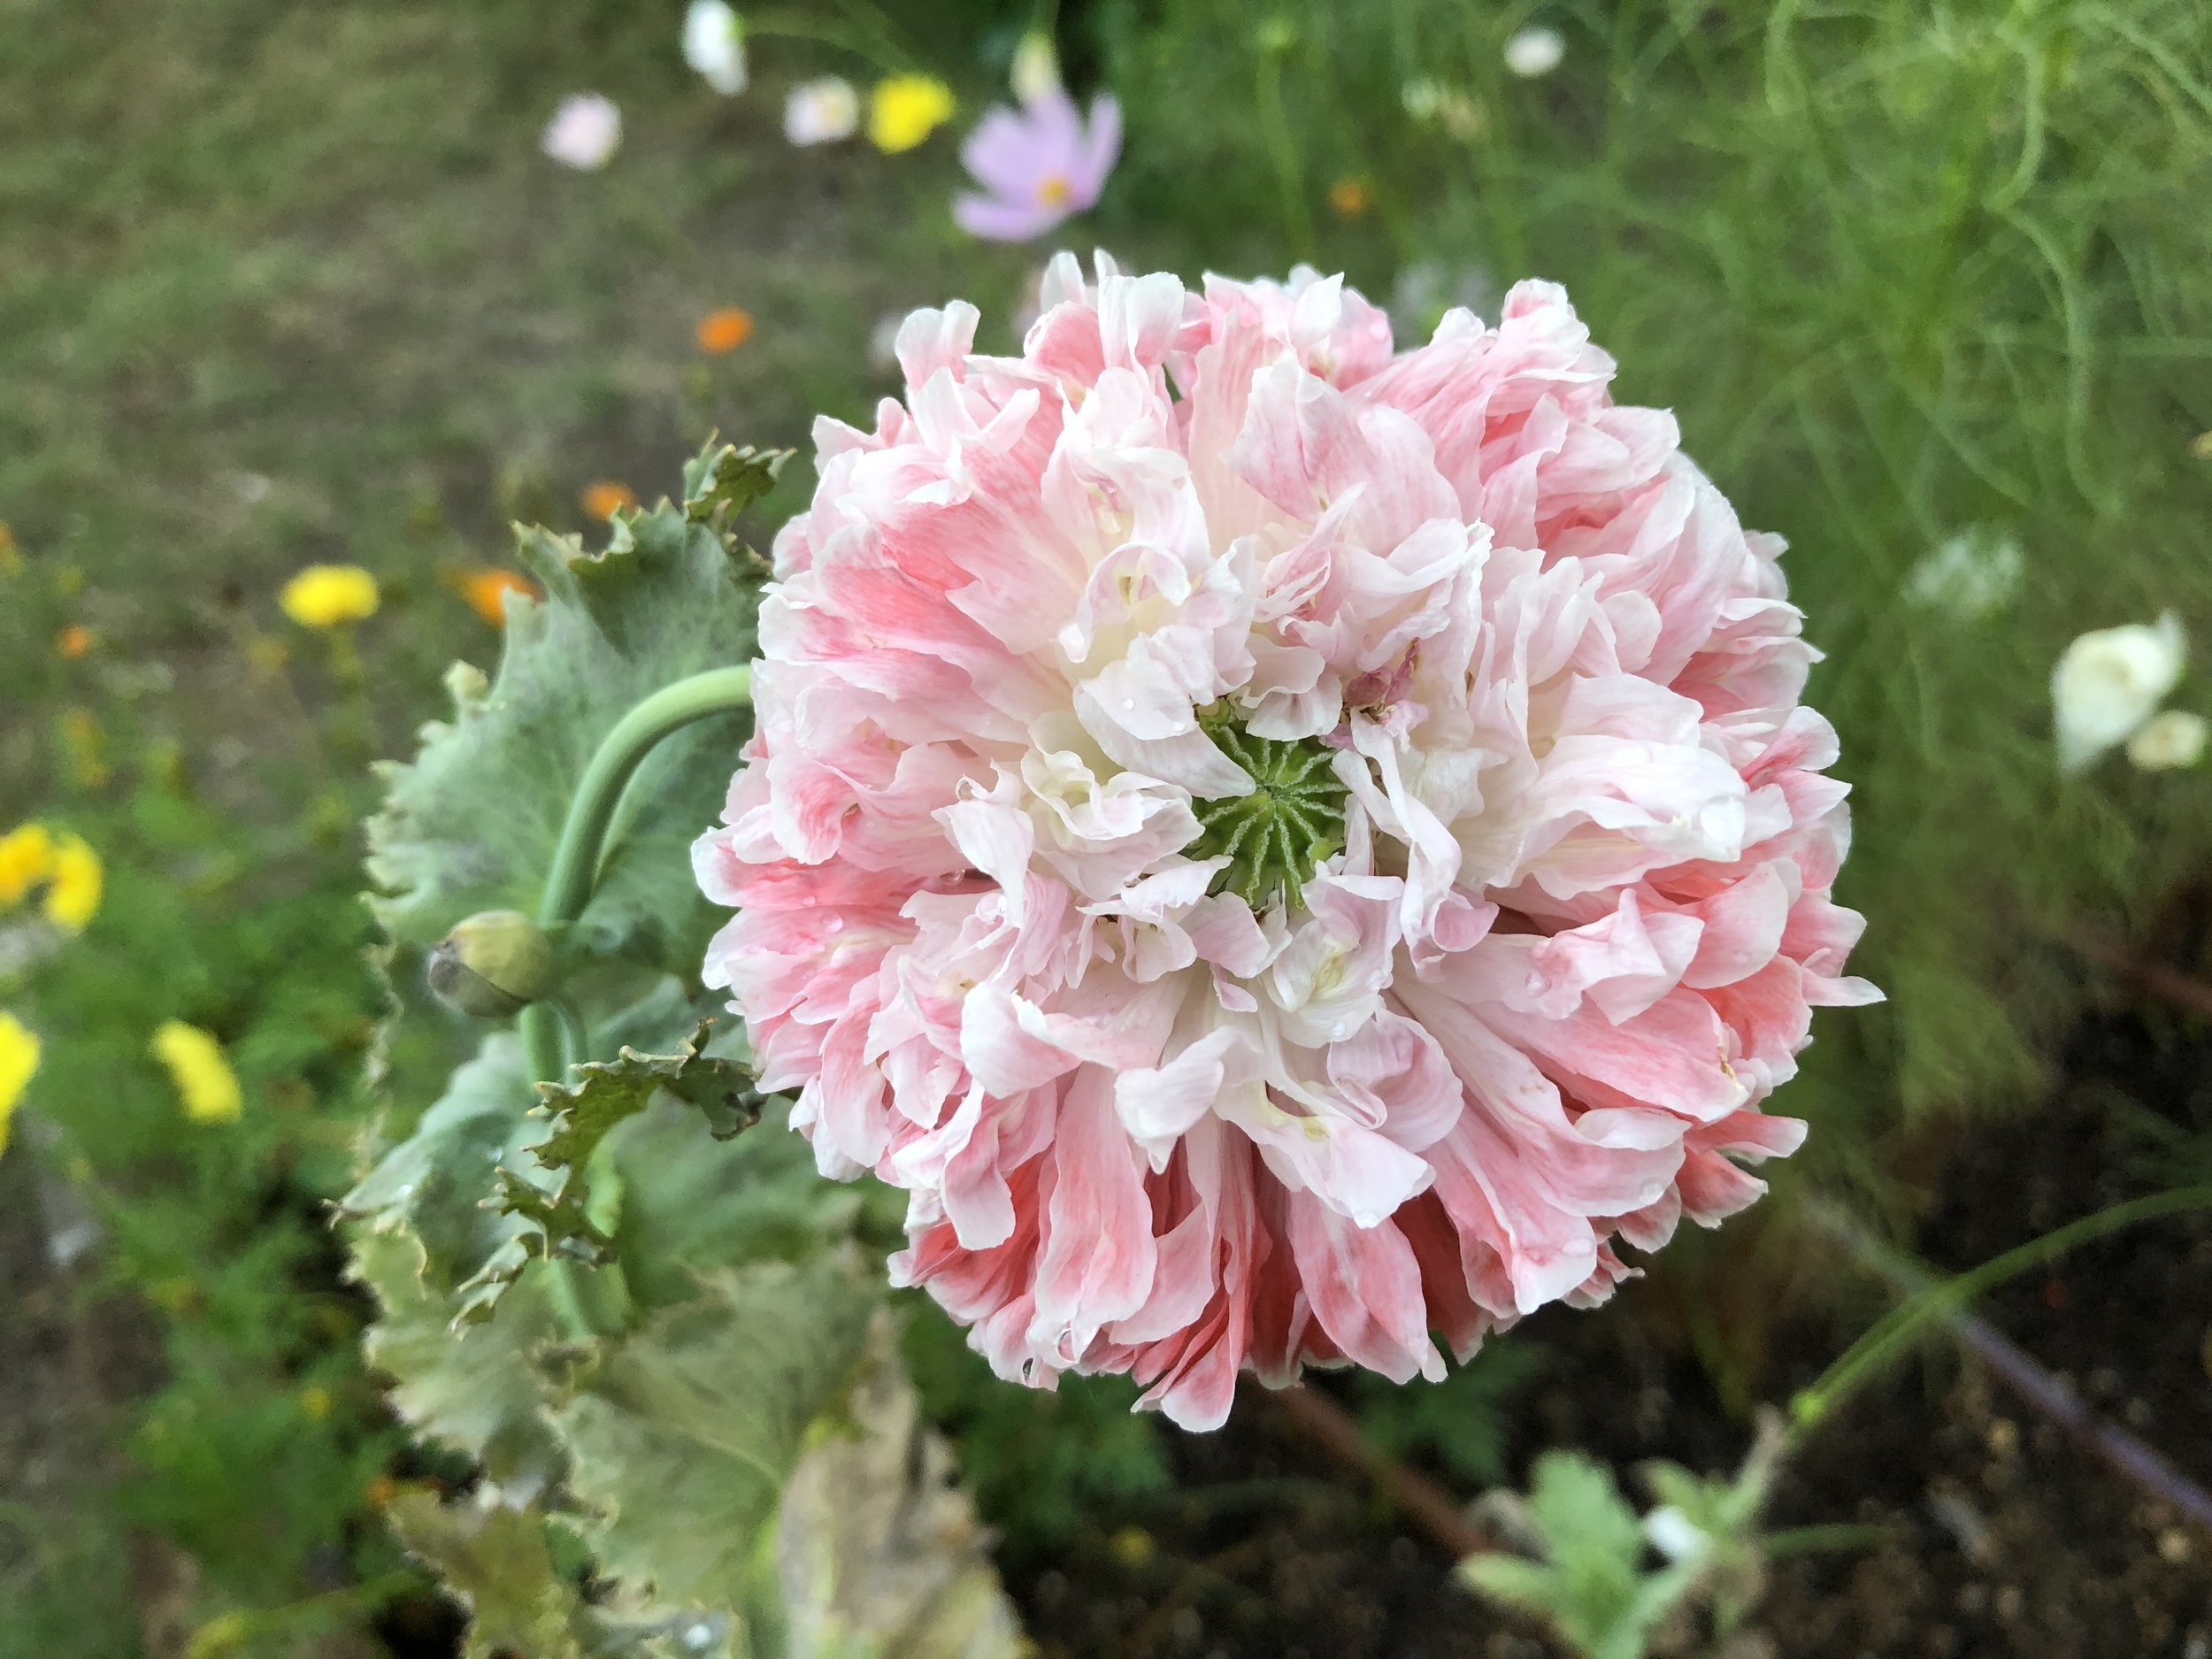 Peony Poppy - Only one of these seed made it and I savored her everyday.